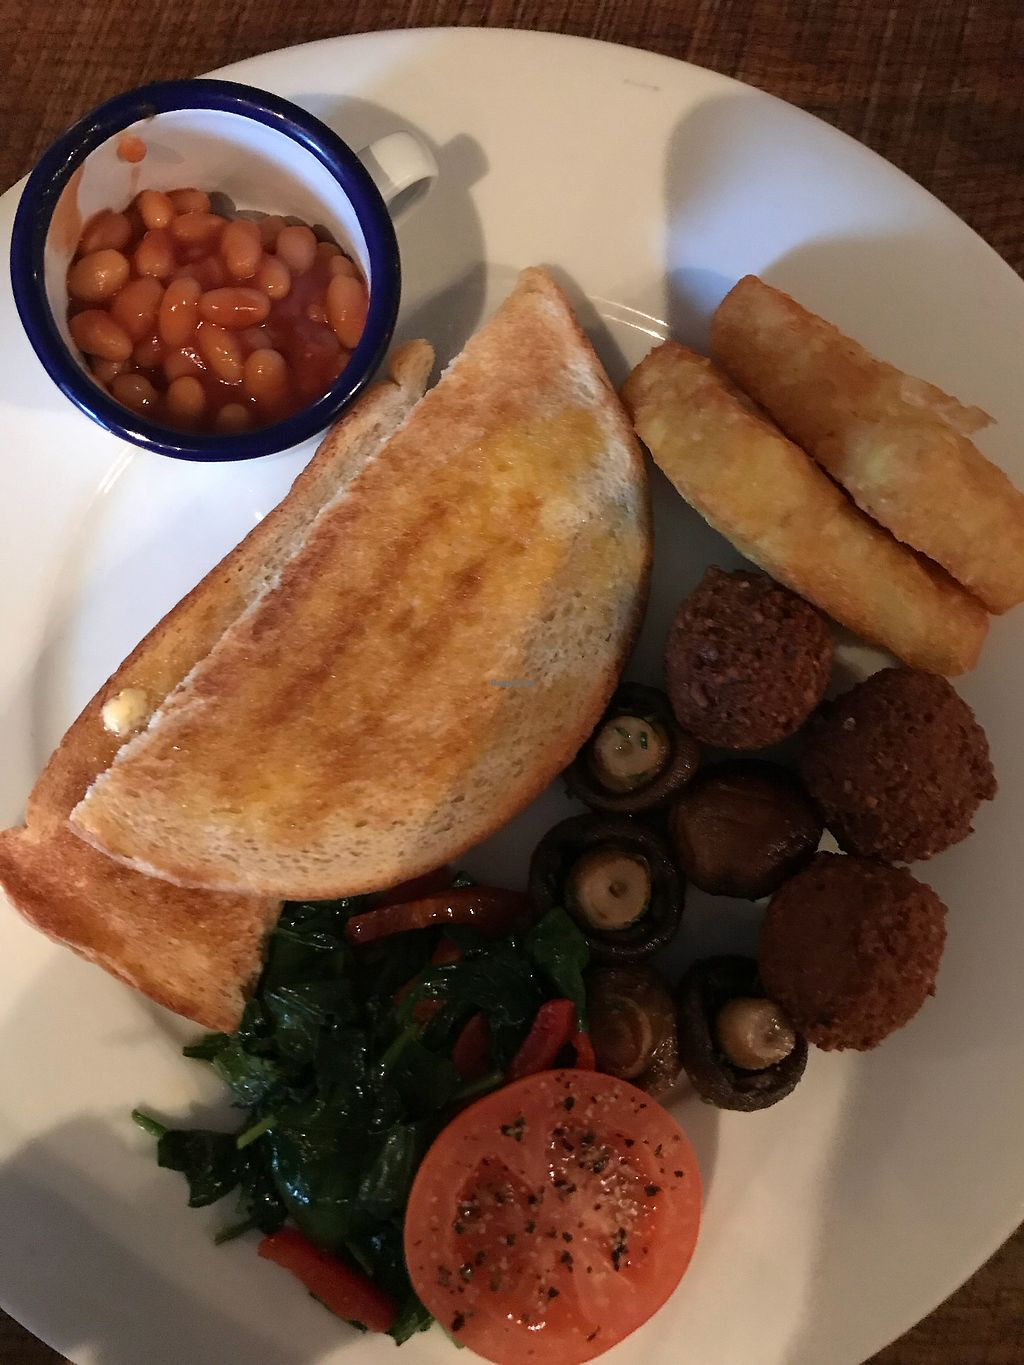 """Photo of Toro Lounge  by <a href=""""/members/profile/Millie10"""">Millie10</a> <br/>Vegan brunch <br/> January 2, 2018  - <a href='/contact/abuse/image/92423/342147'>Report</a>"""